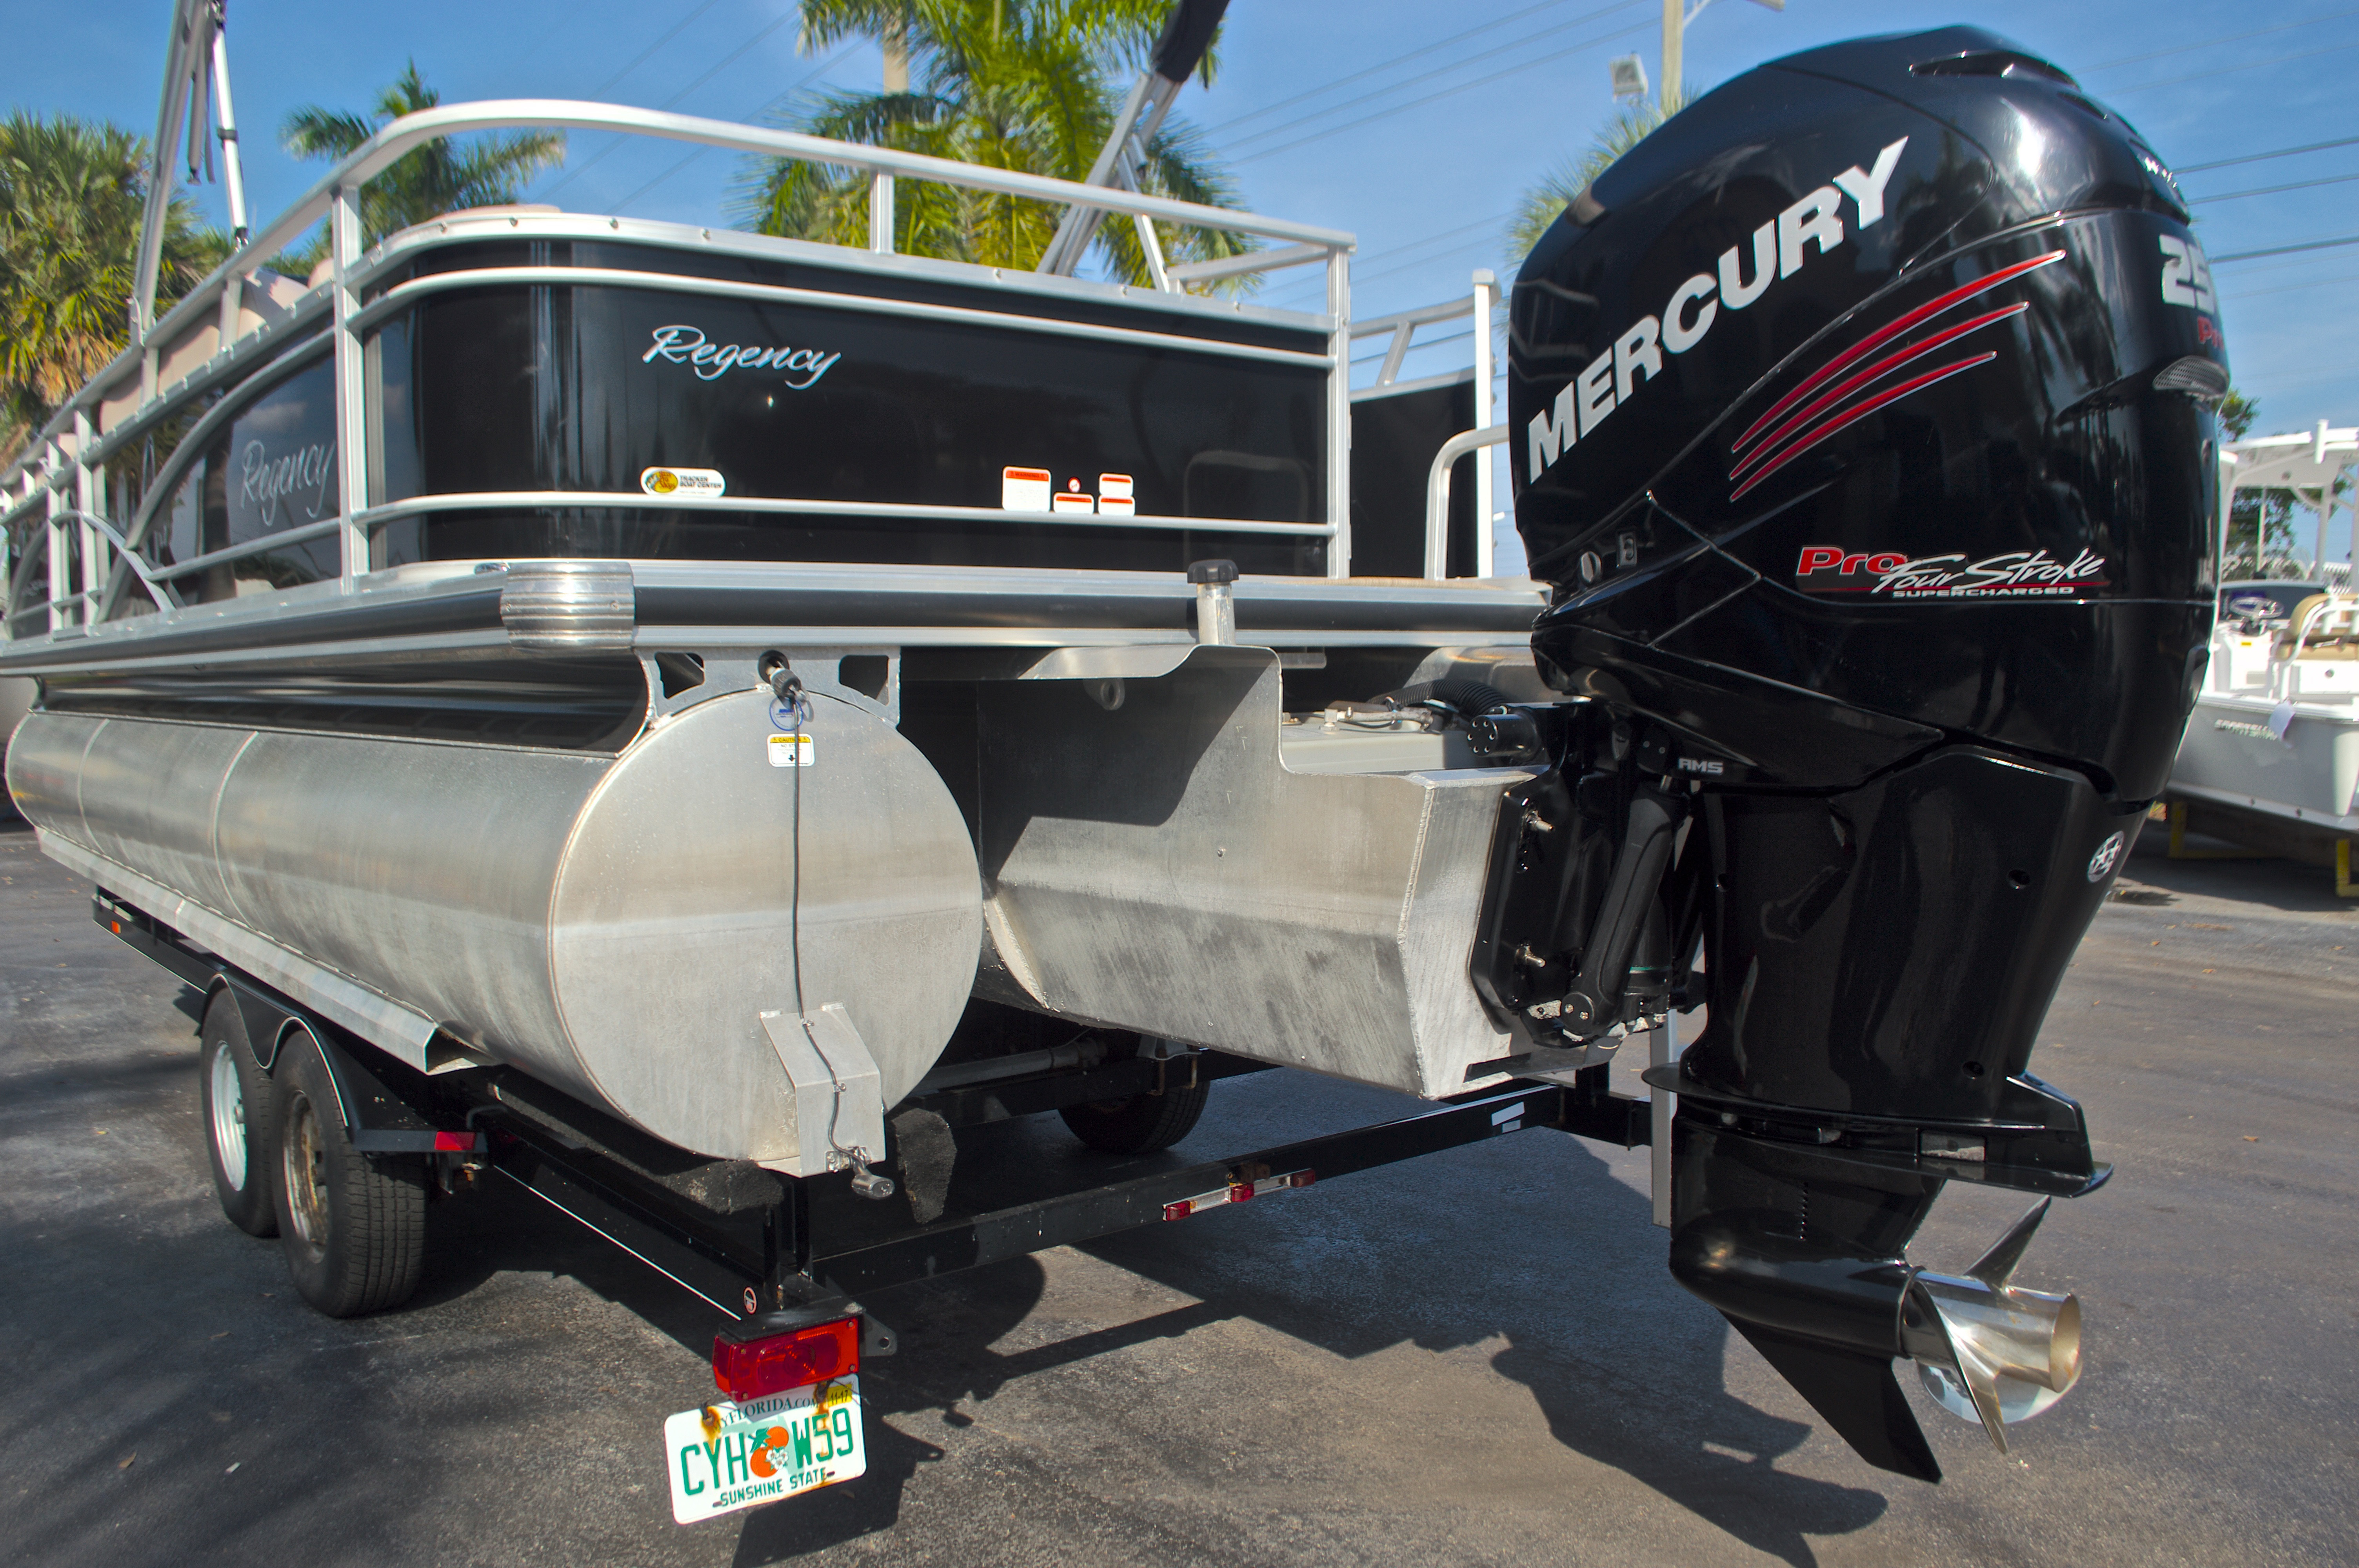 Thumbnail 8 for Used 2014 Regency Party Barge 254 XP3 boat for sale in West Palm Beach, FL